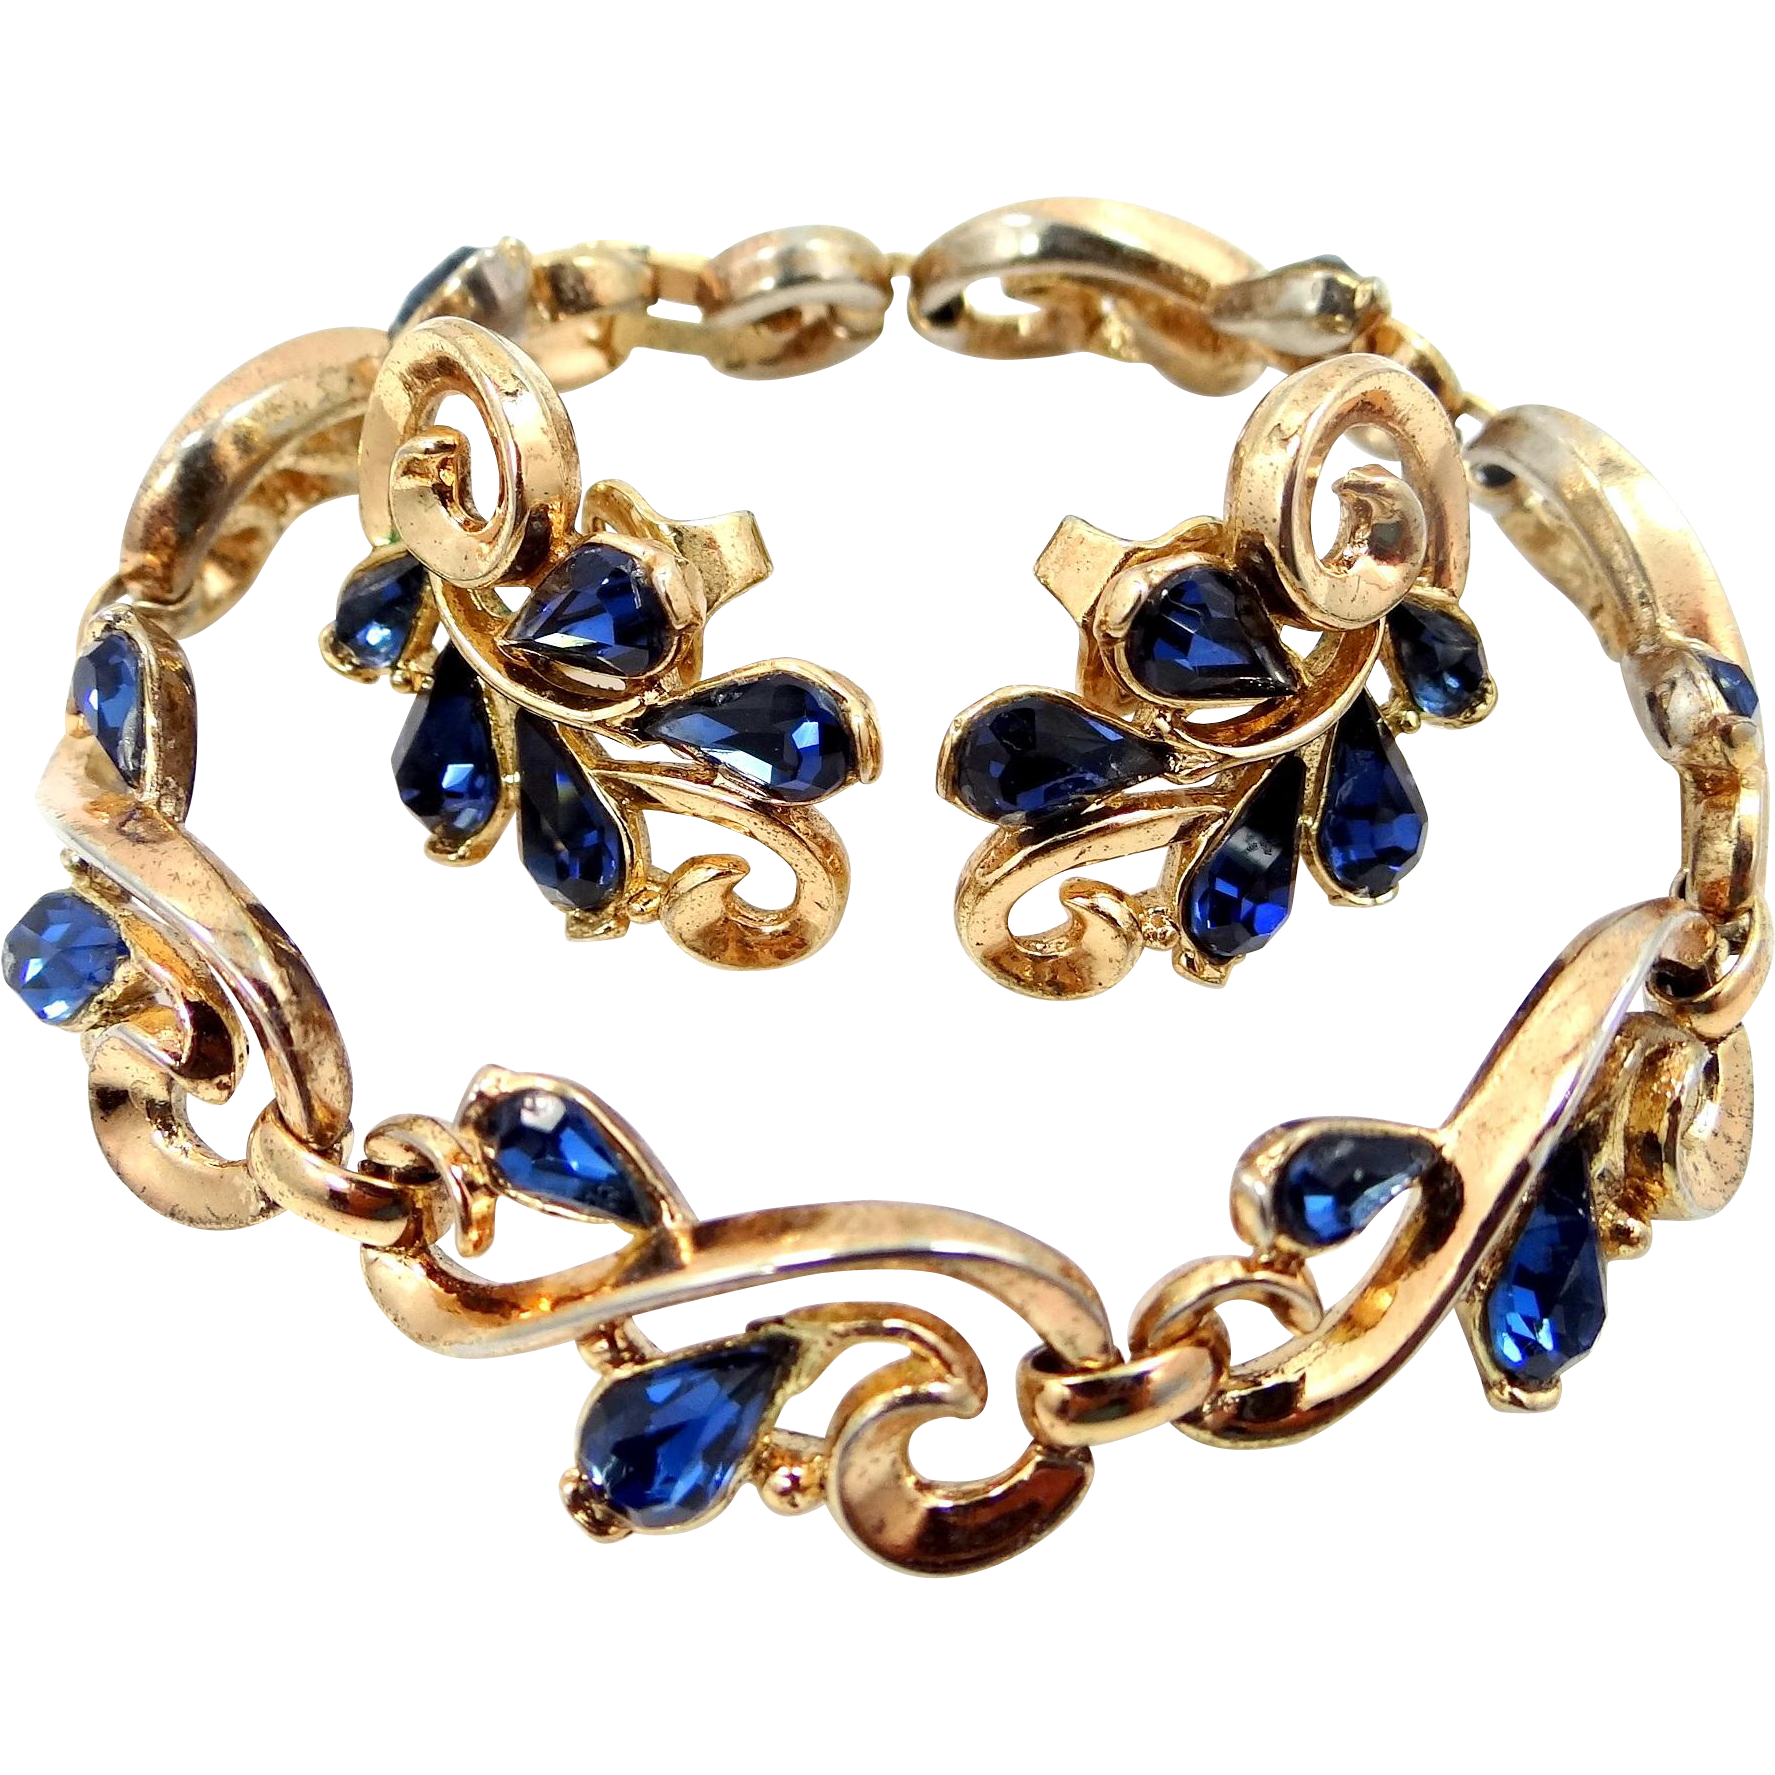 1950s Trifari Bracelet and Earrings with Sapphire Glass